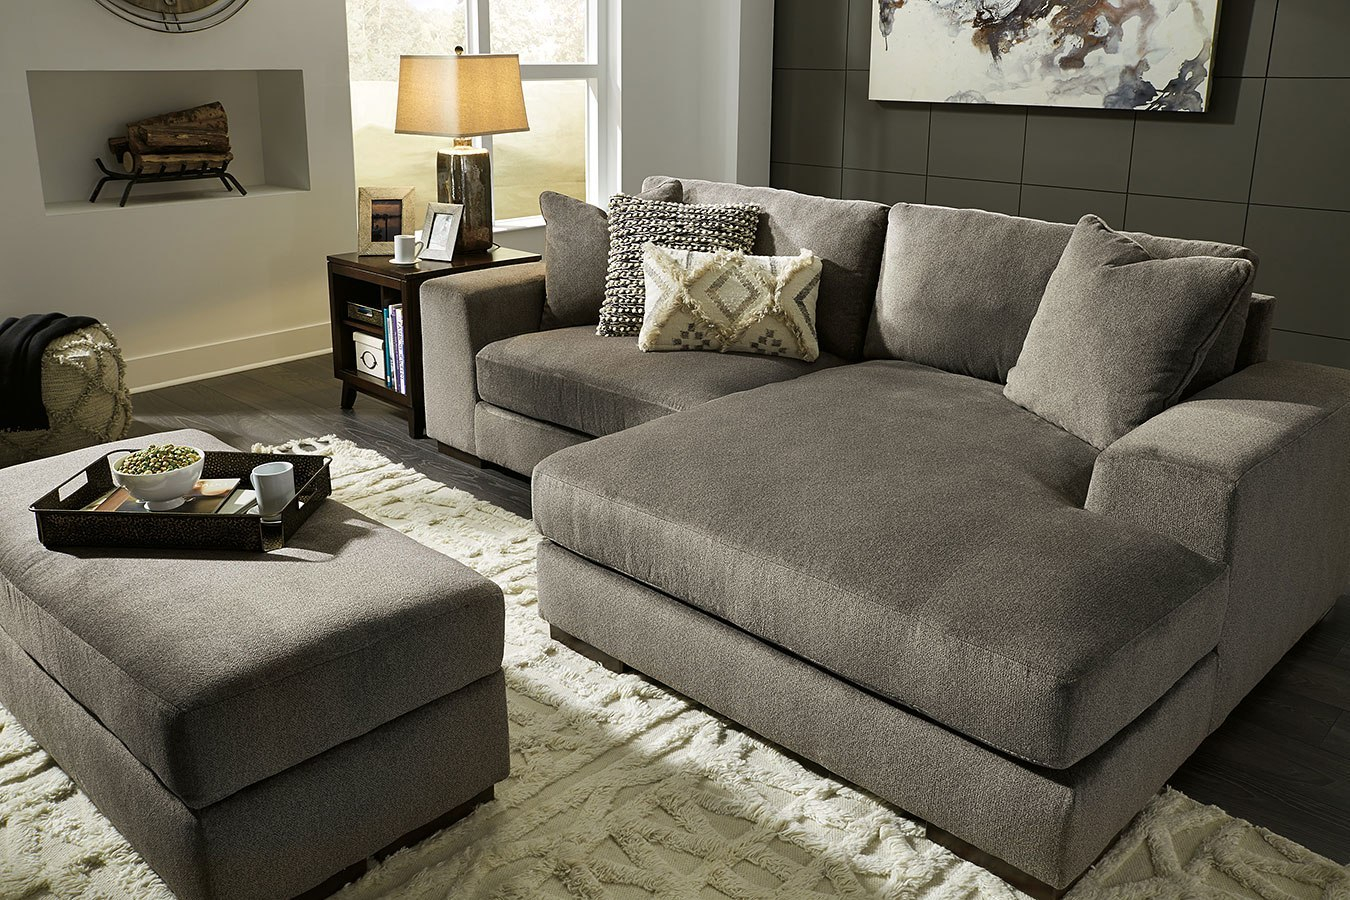 Manzani Graphite Sectional Living Room Set Signature Design pertaining to 13 Some of the Coolest Initiatives of How to Build Living Room Sets